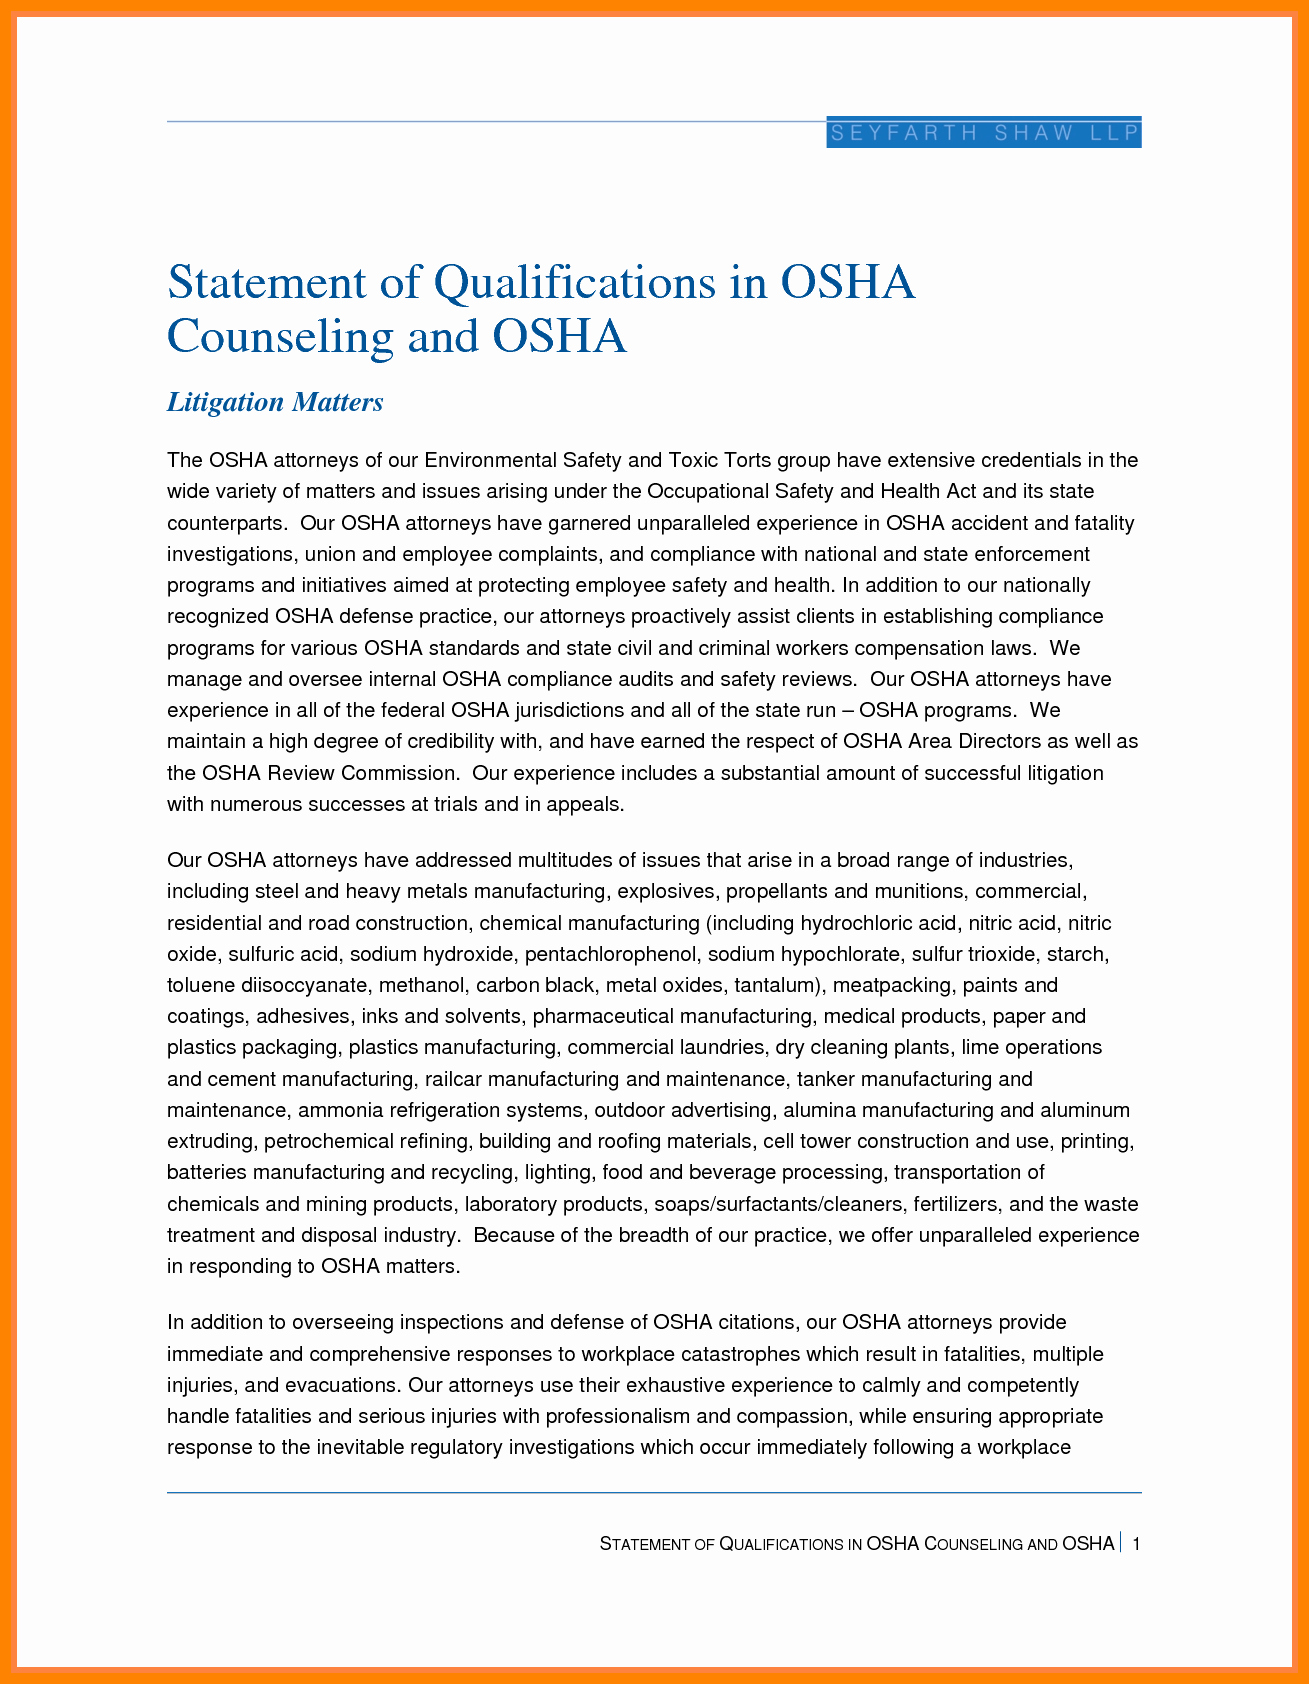 Statement Of Qualifications Example Letter Lovely 10 Statement Of Qualification